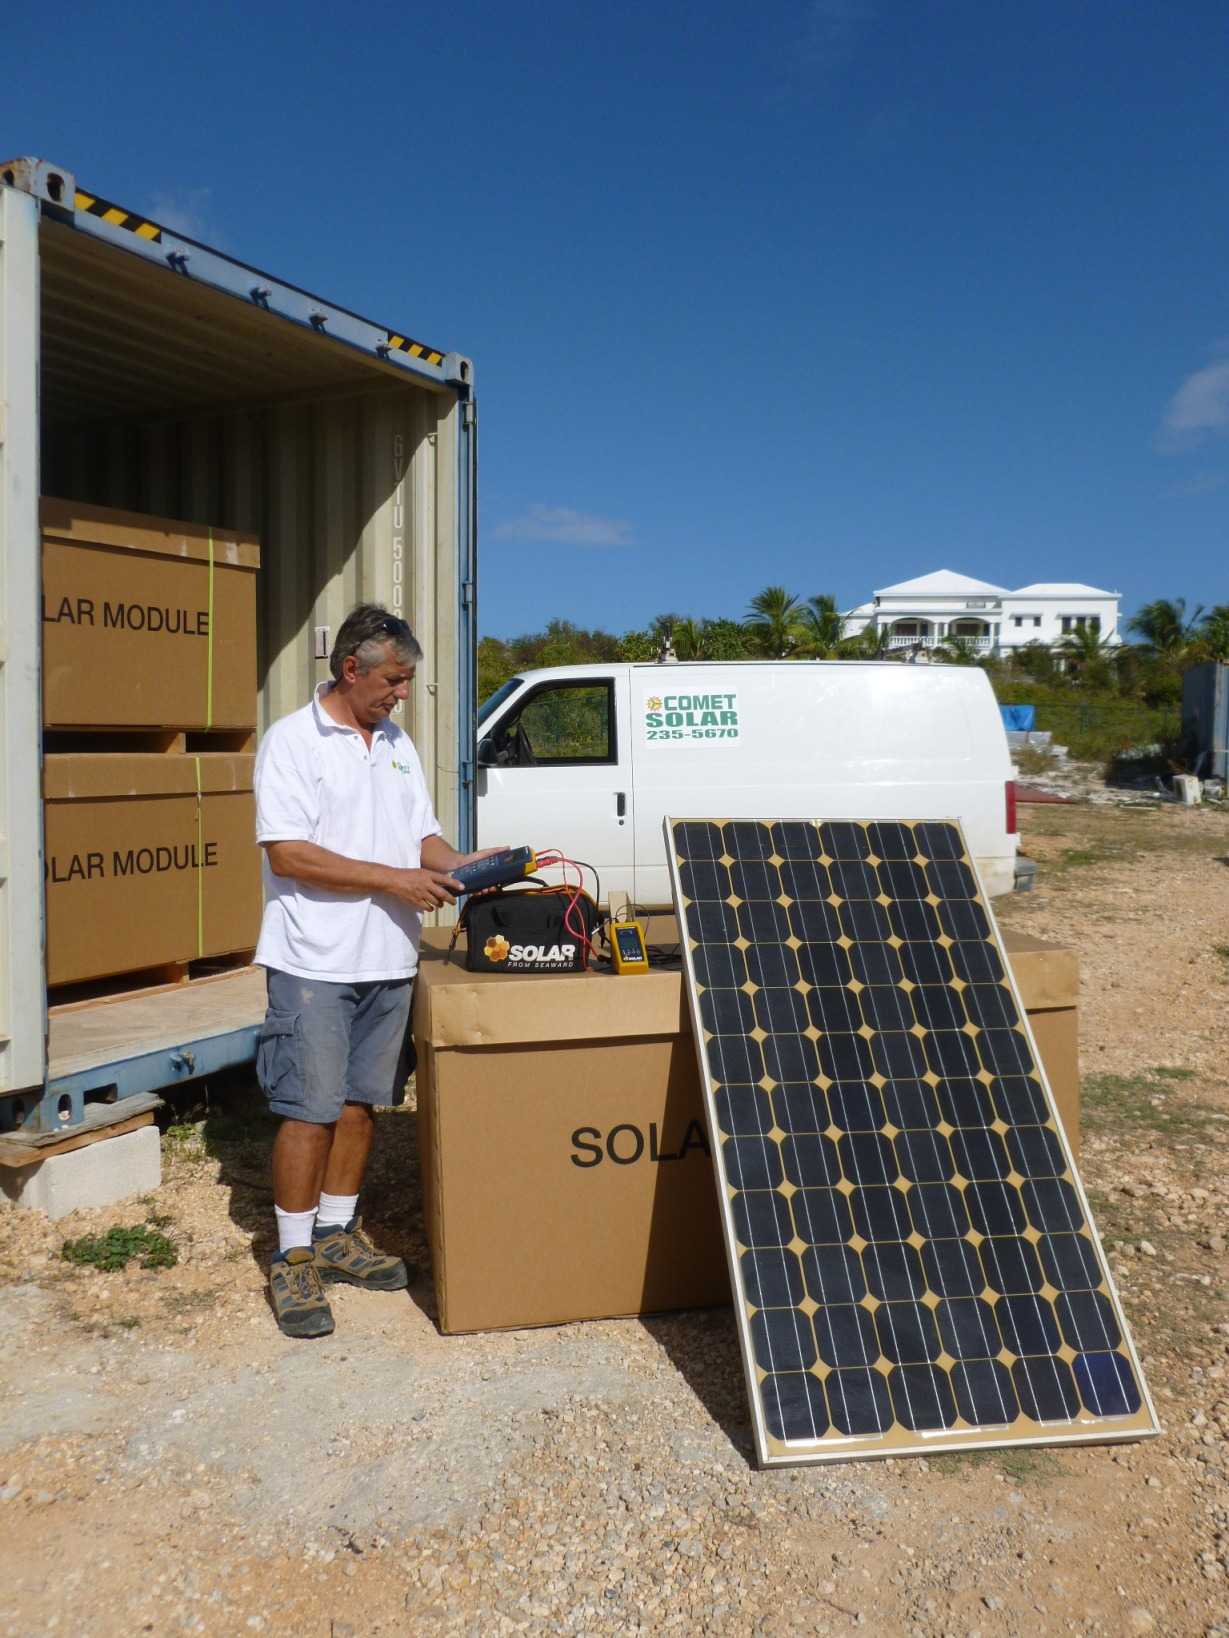 New solar PV test instrumentation helps Caribbean installer to verify system performance